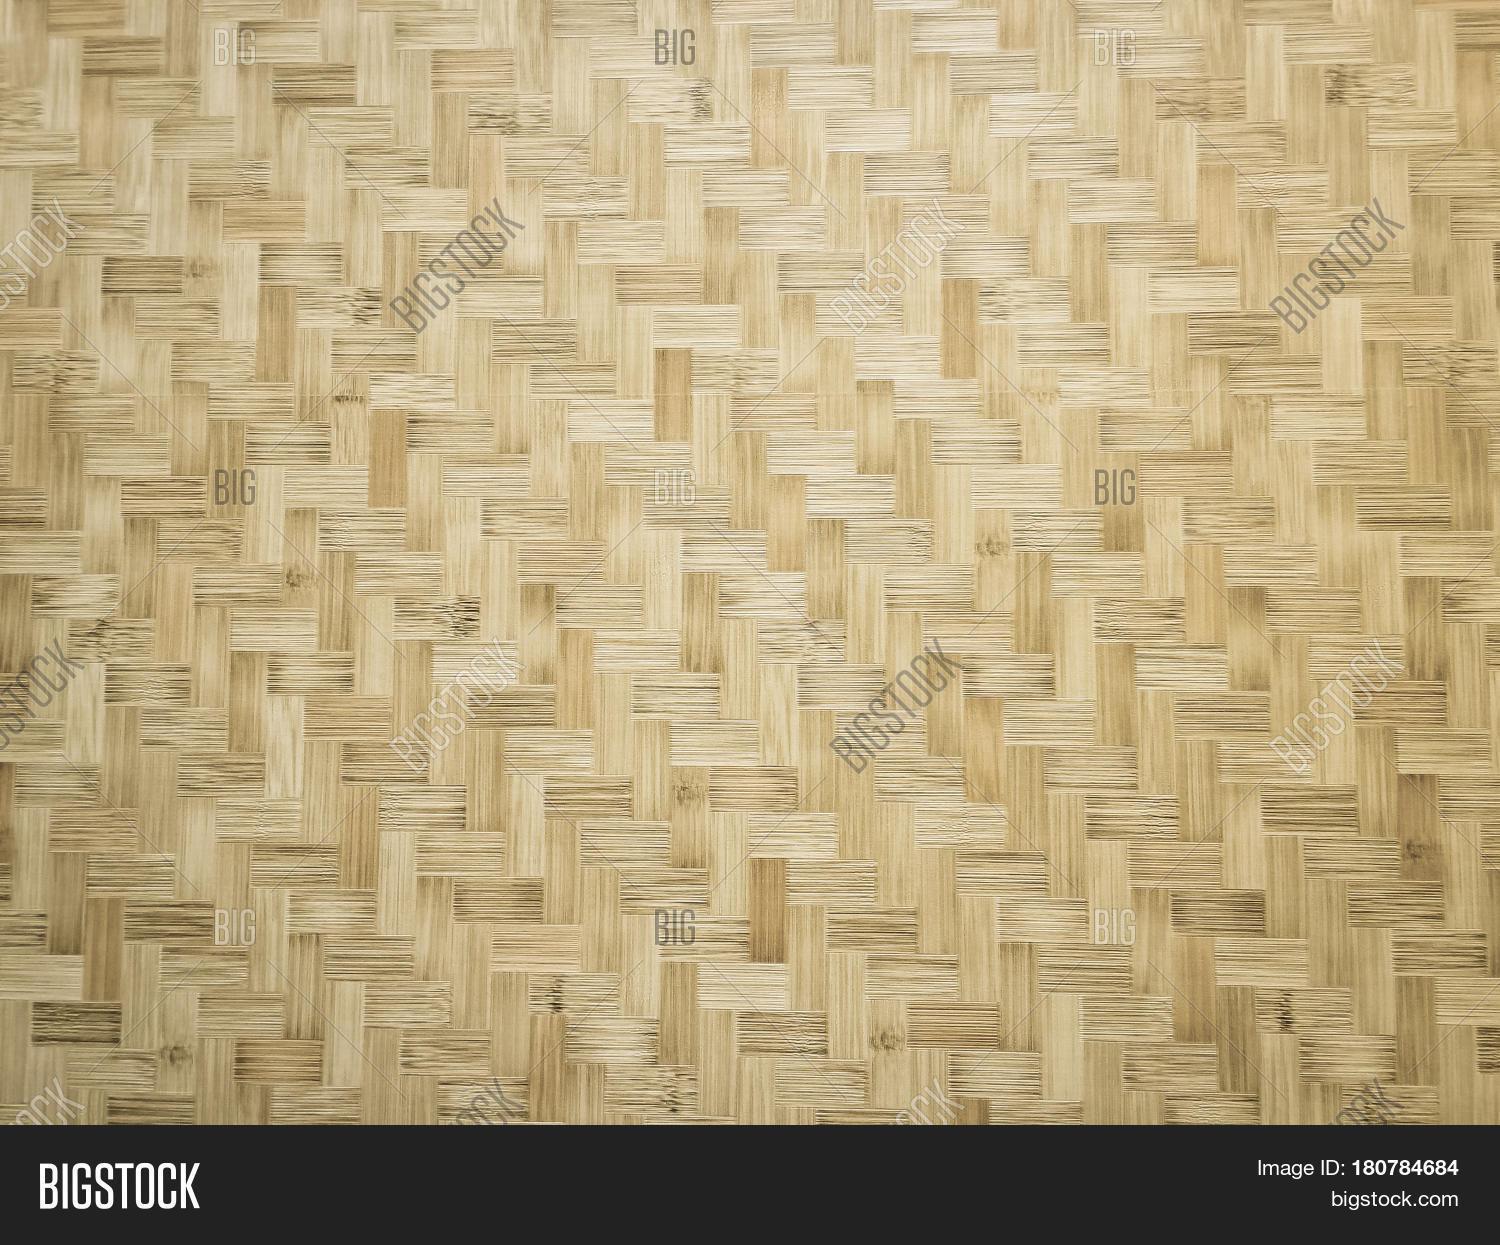 Nature Wood Plank Wall Image & Photo (Free Trial) | Bigstock